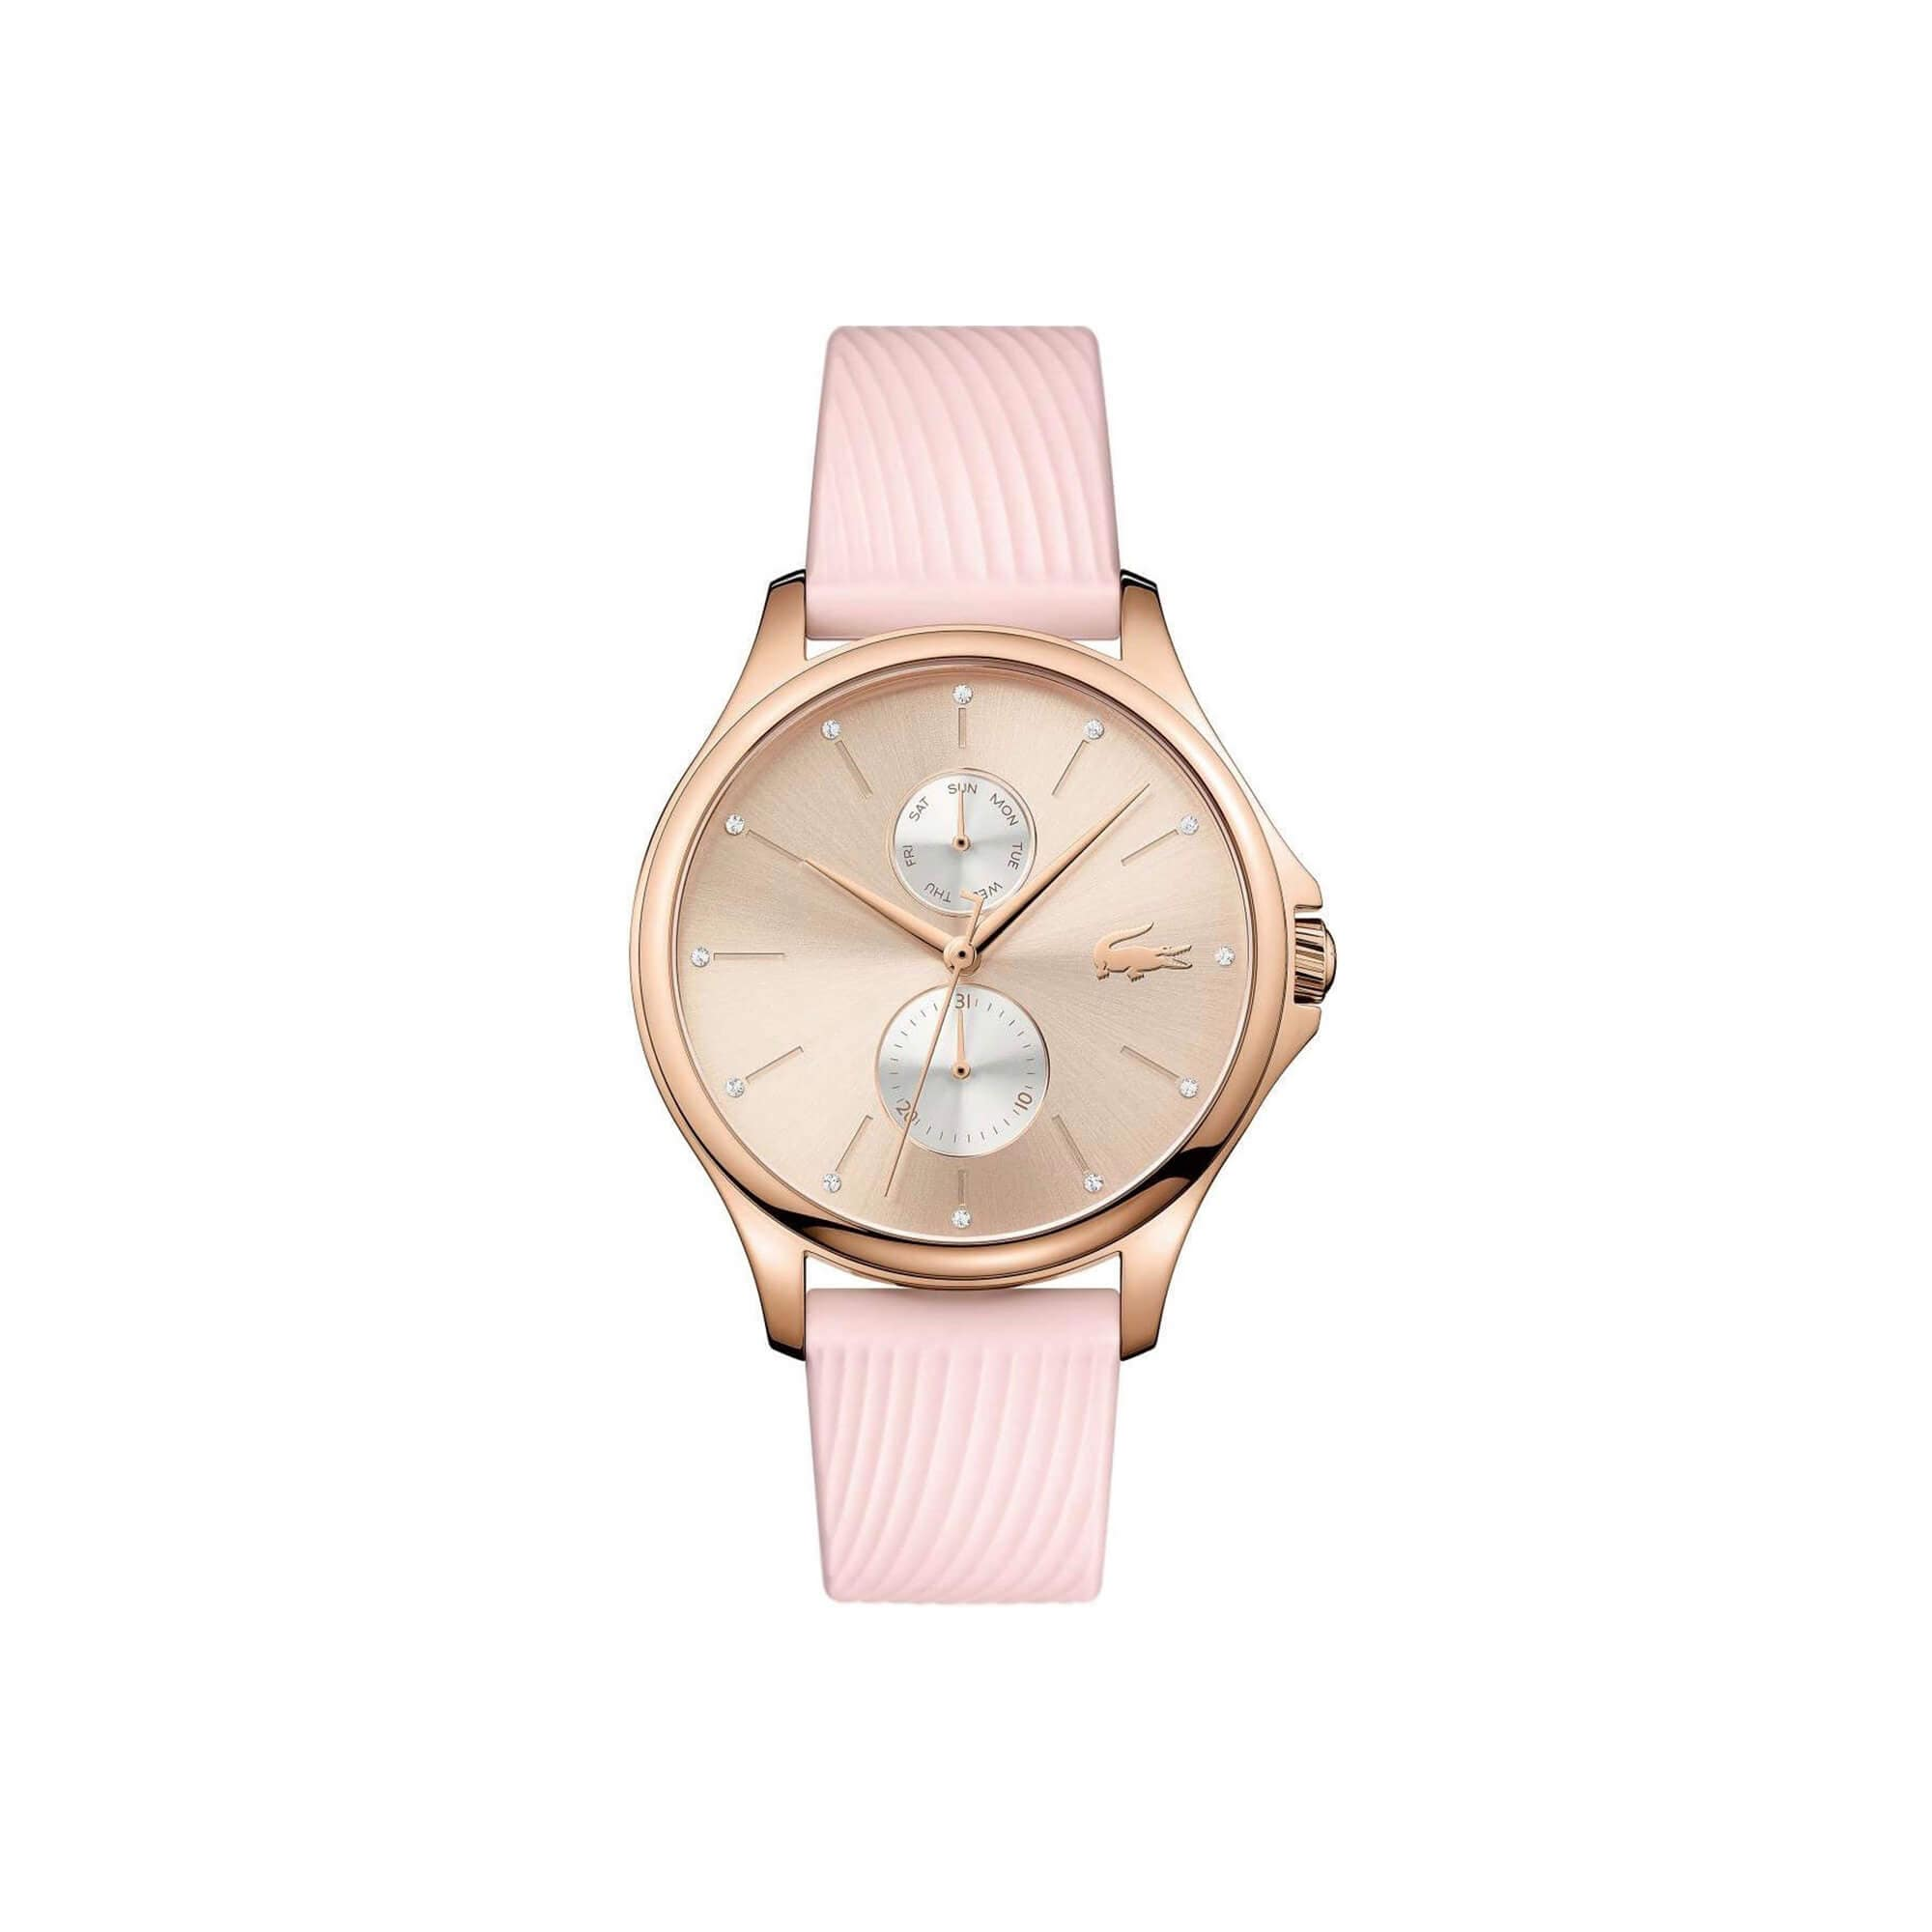 Women's Kea Multifunctions Watch with Pink Silicone Strap